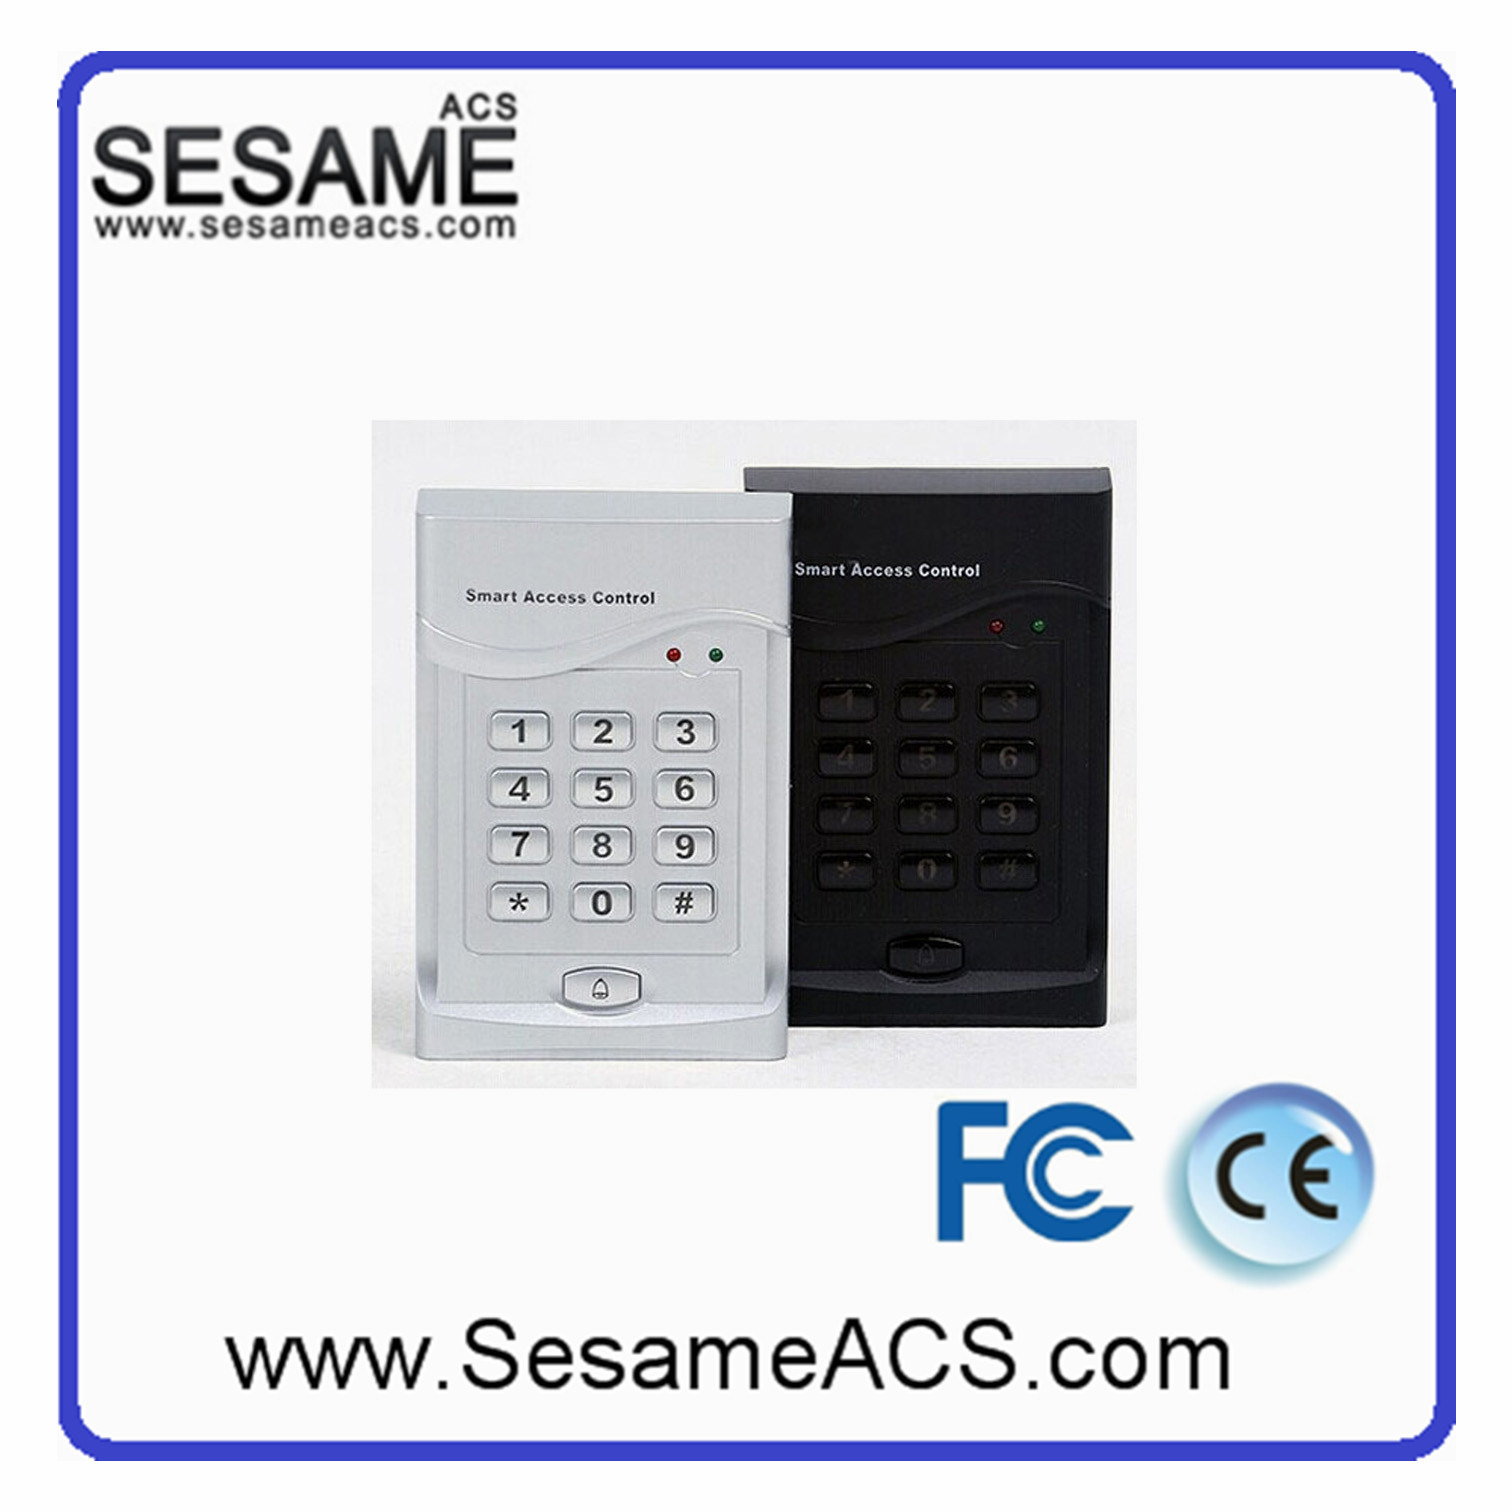 China Manufacturer Stand Alone Access Control System Smart Card Reader (SE60B-WG)